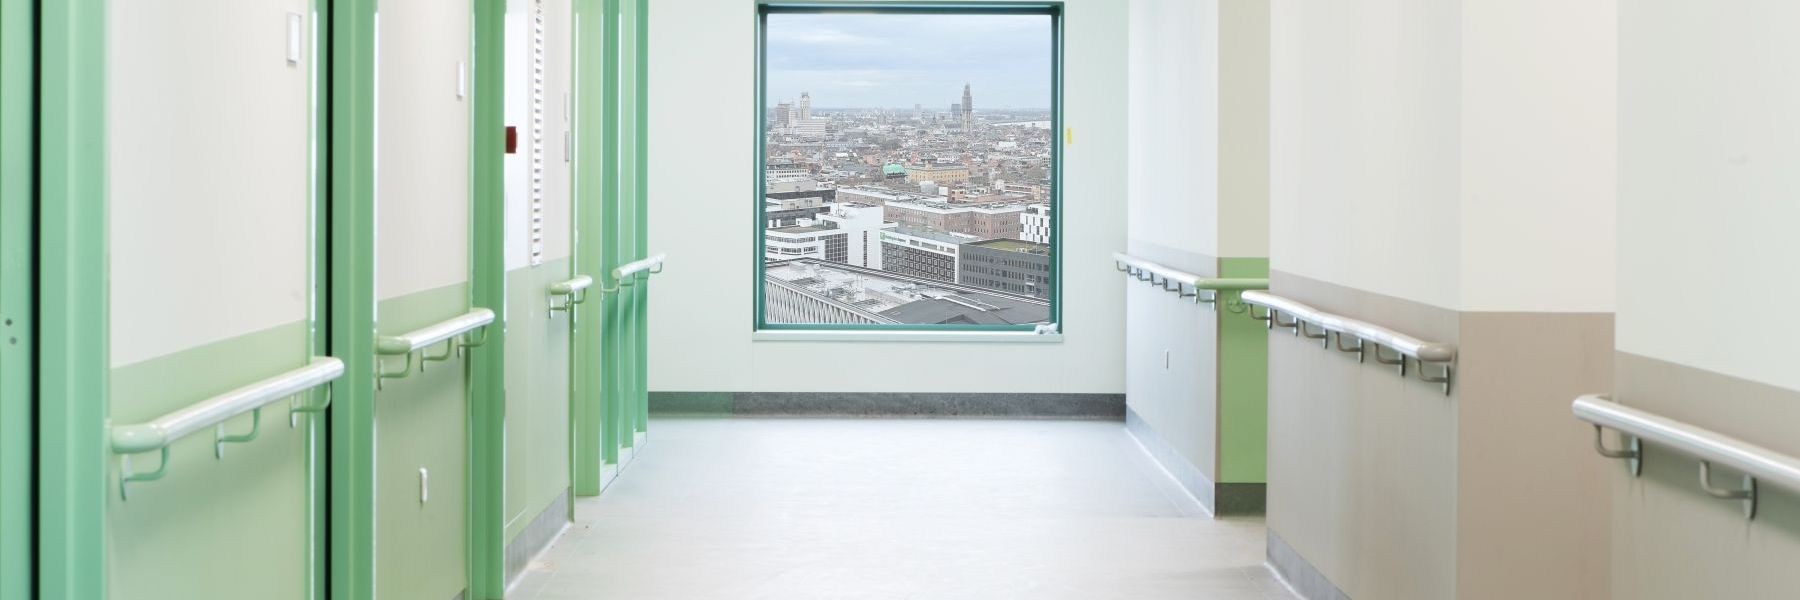 LEXAN™ CLINIWALL™ SHEET CADIX hospital with view-uitsnede